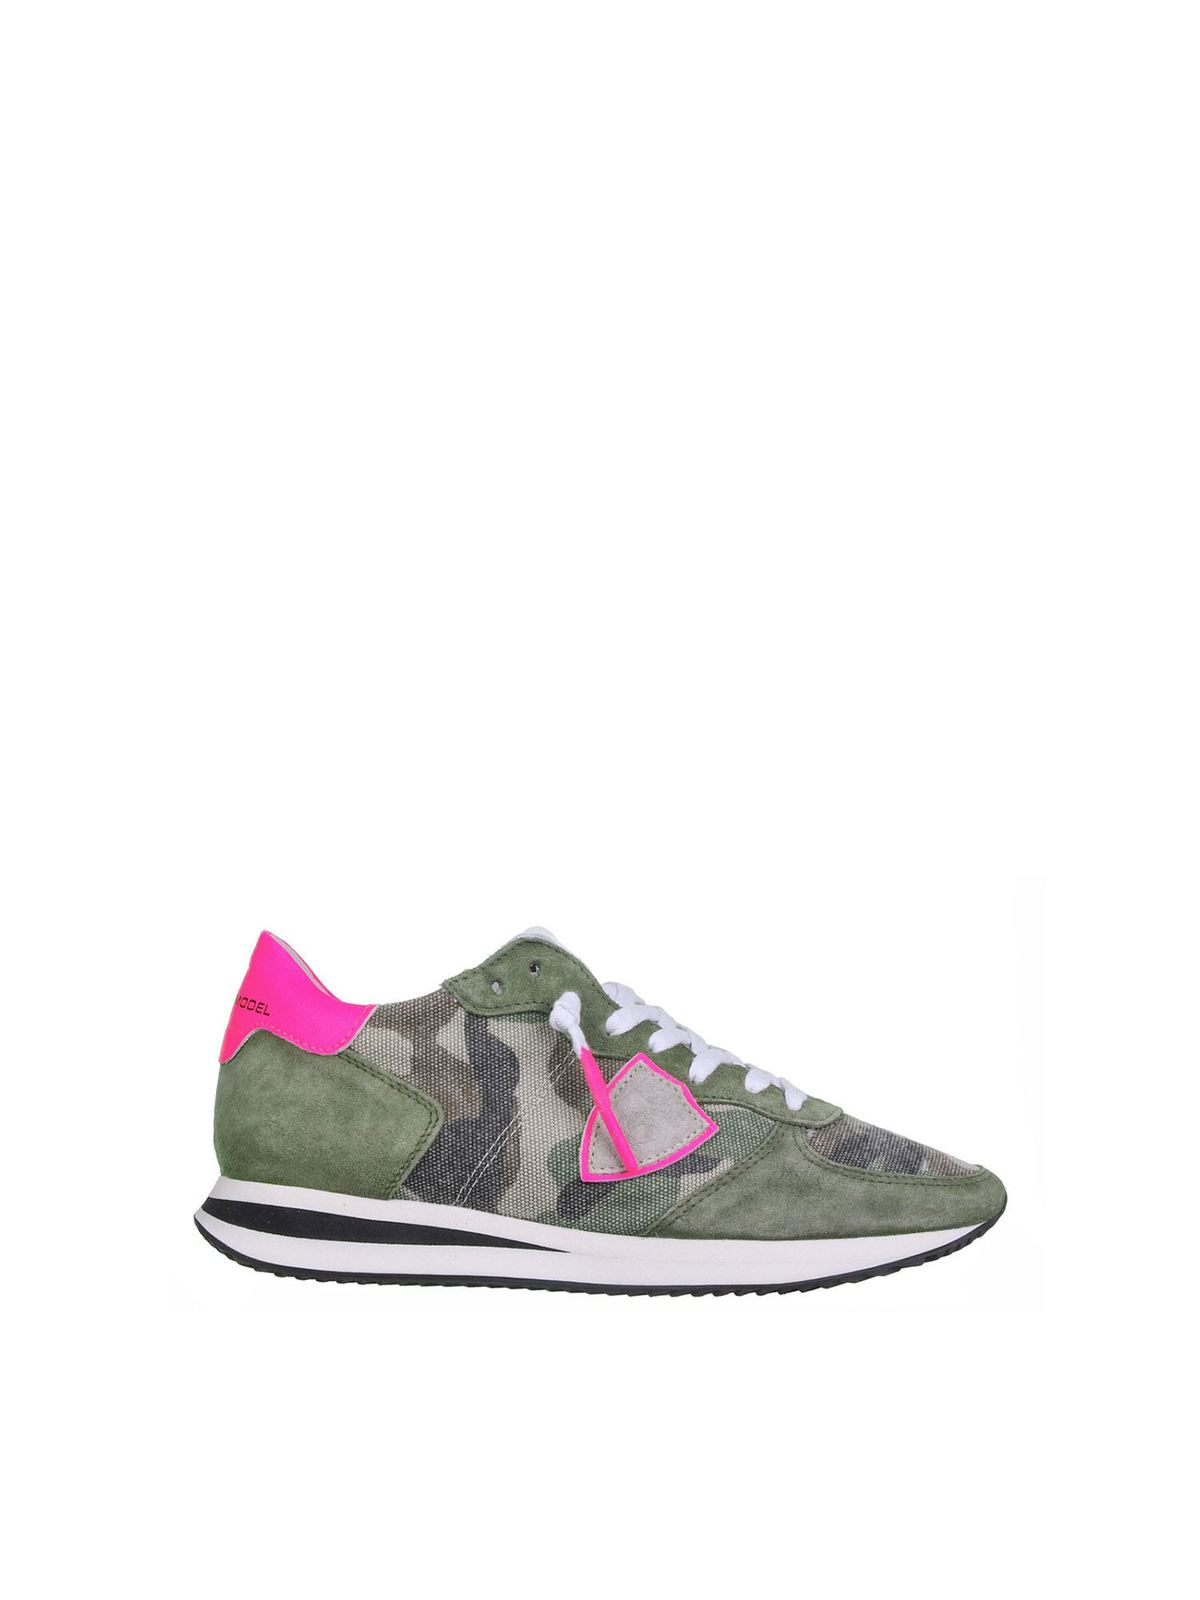 Philippe Model TRPX SNEAKERS IN CAMOUFLAGE AND FUCHSIA